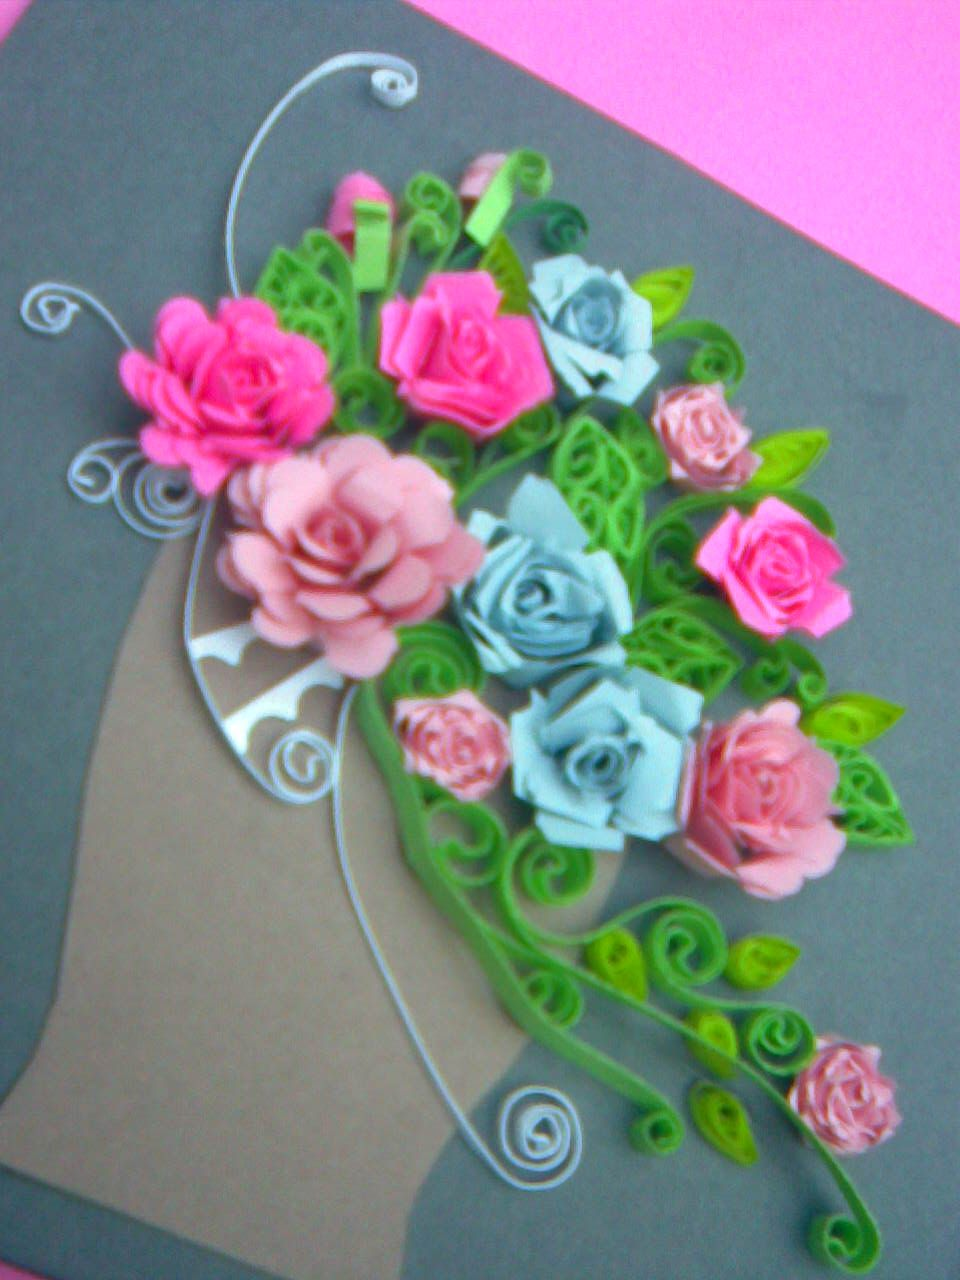 quilling projects Paper crafts quilling letters: looks cool but time-consuming find this pin and more on quilling projects by michelle gann this could make me want to quill paper crafts quilling initials -- i've got to try this.